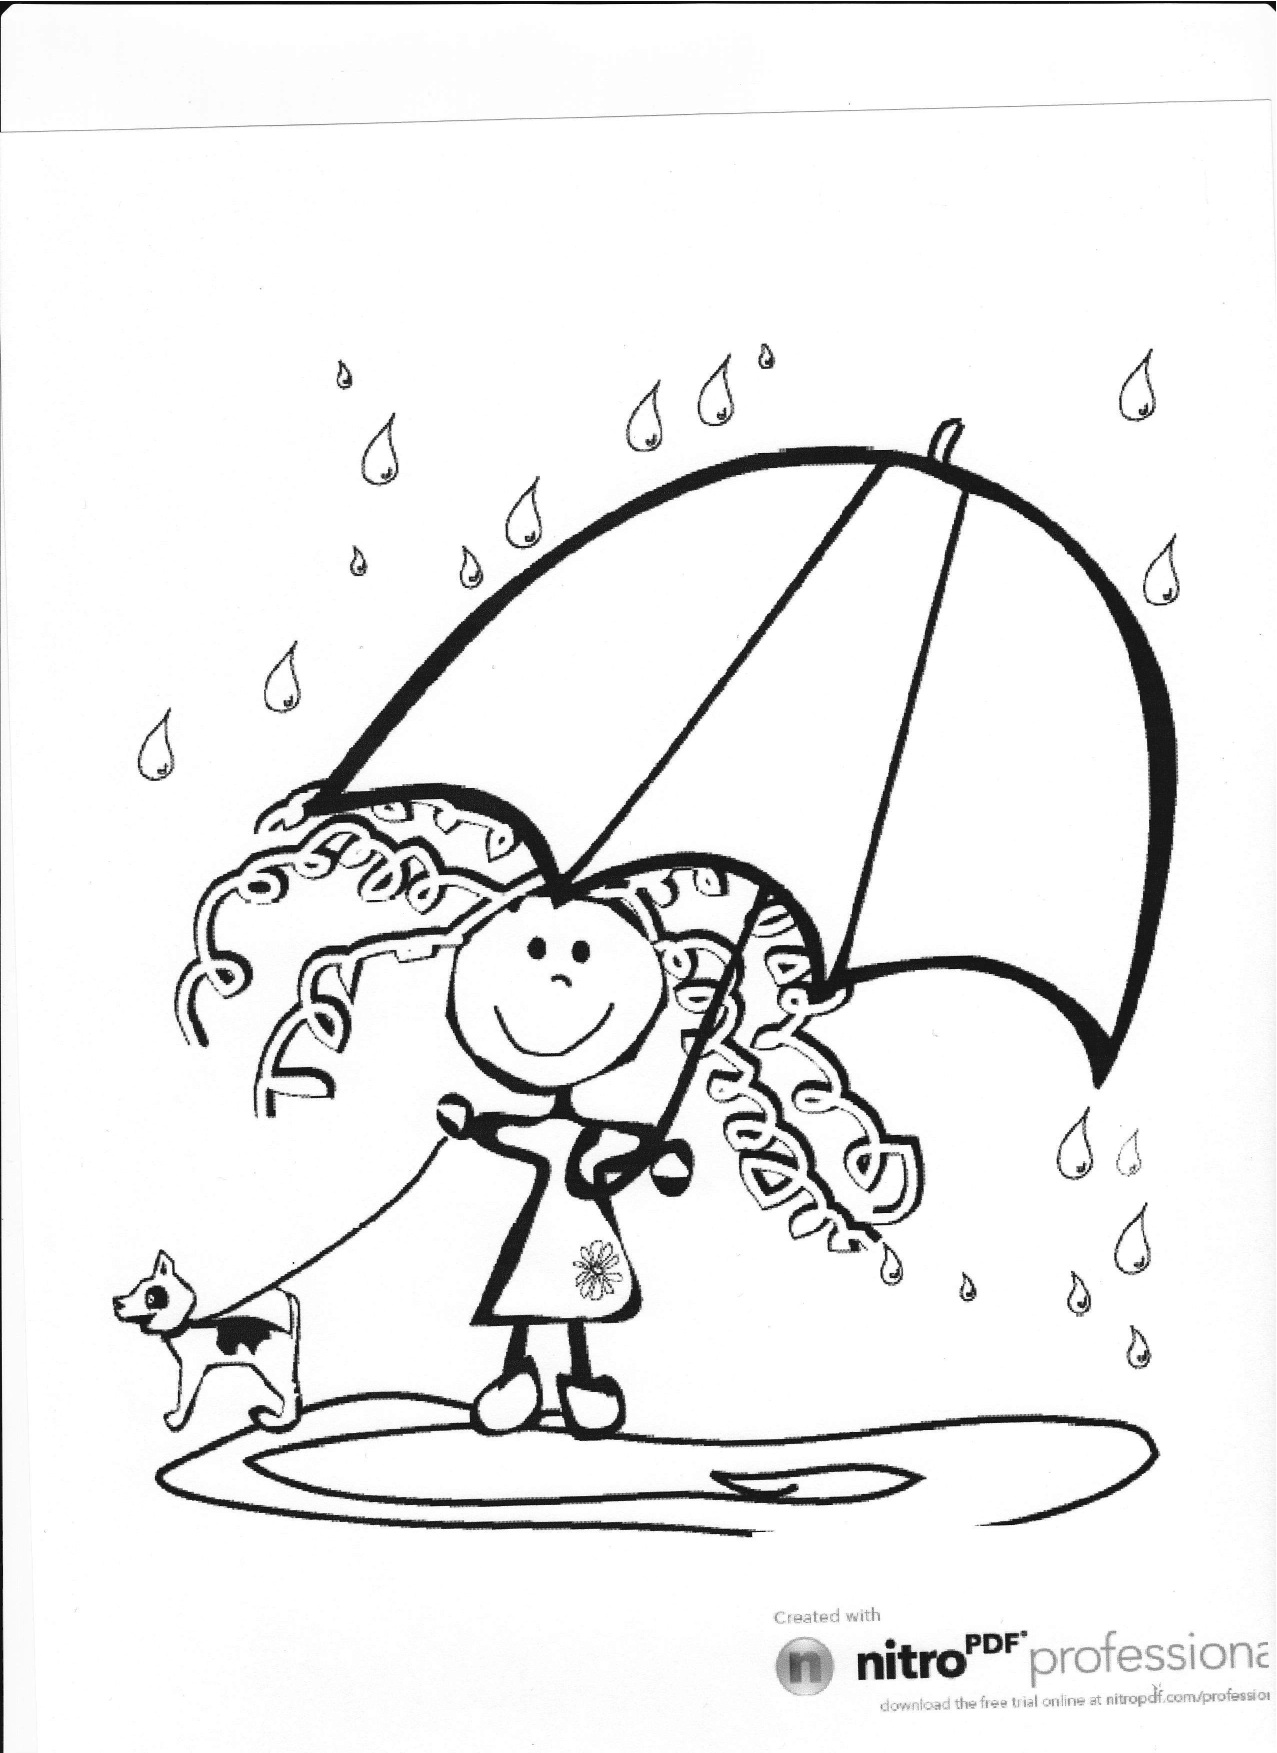 rainy day coloring pages for preschoolers rainy day coloring pages free coloring home preschoolers day coloring for rainy pages